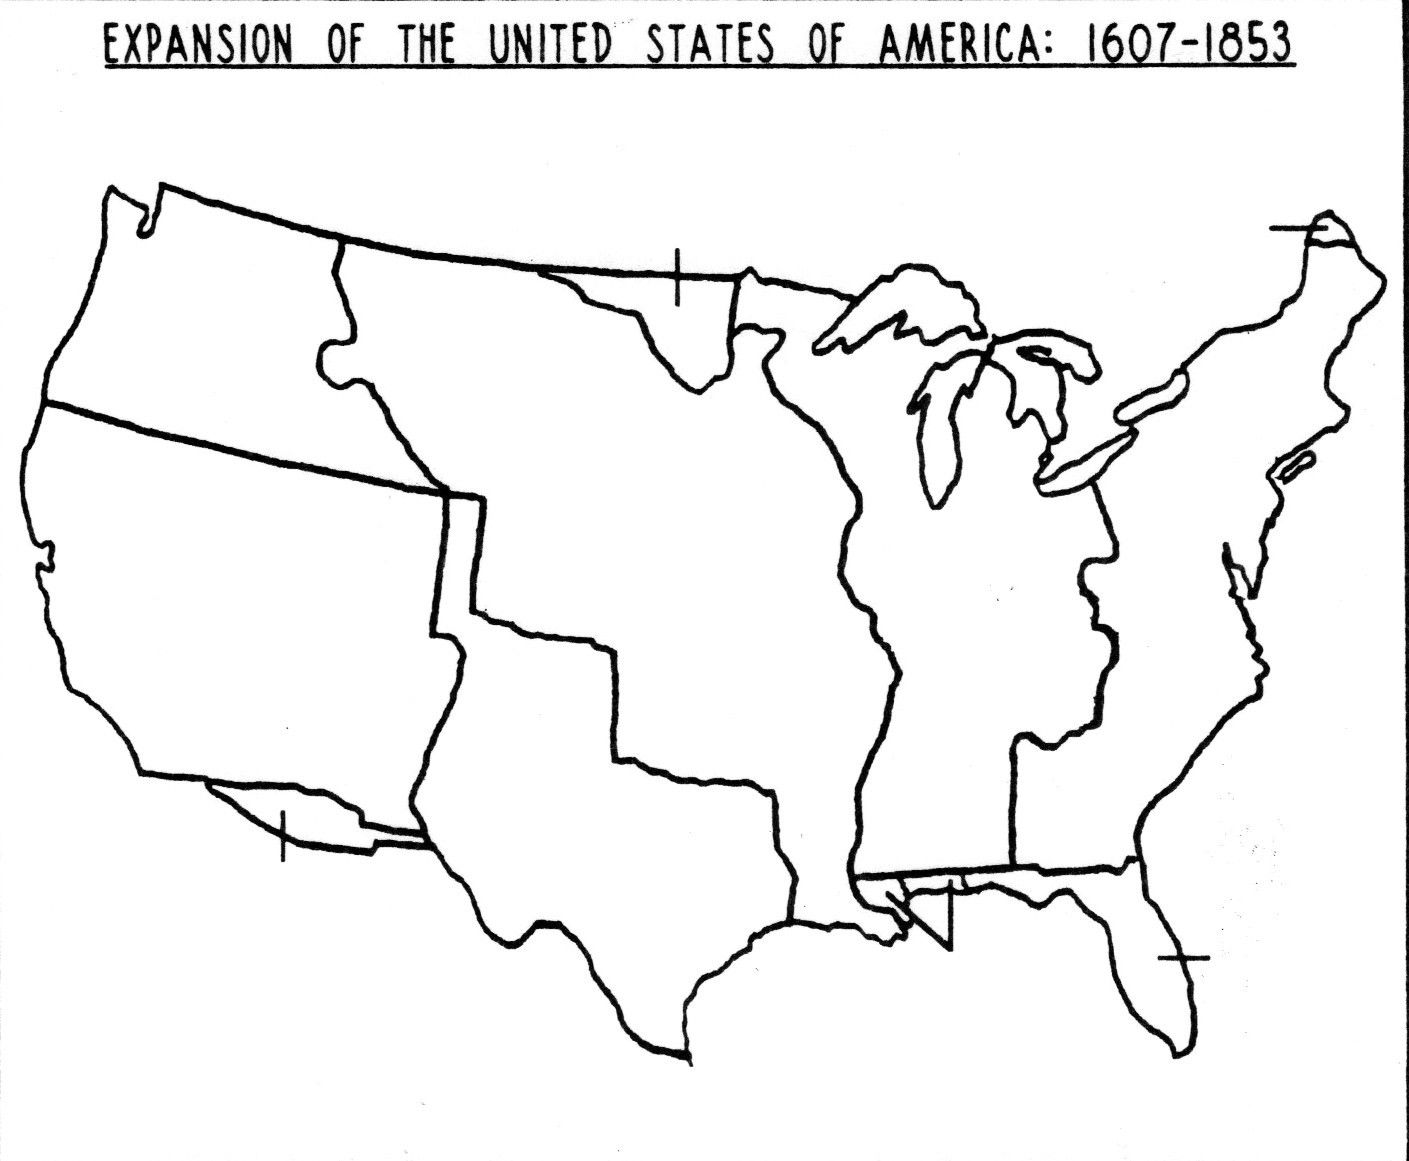 westward expansion united state economical growth 8: nine states were developed during two waves of westward growth these were vermont, kentucky, tennessee, ohio, indiana, illinois, mississippi, alabama, and missouri these states reflected the growth of the land west of the appalachian mountains.